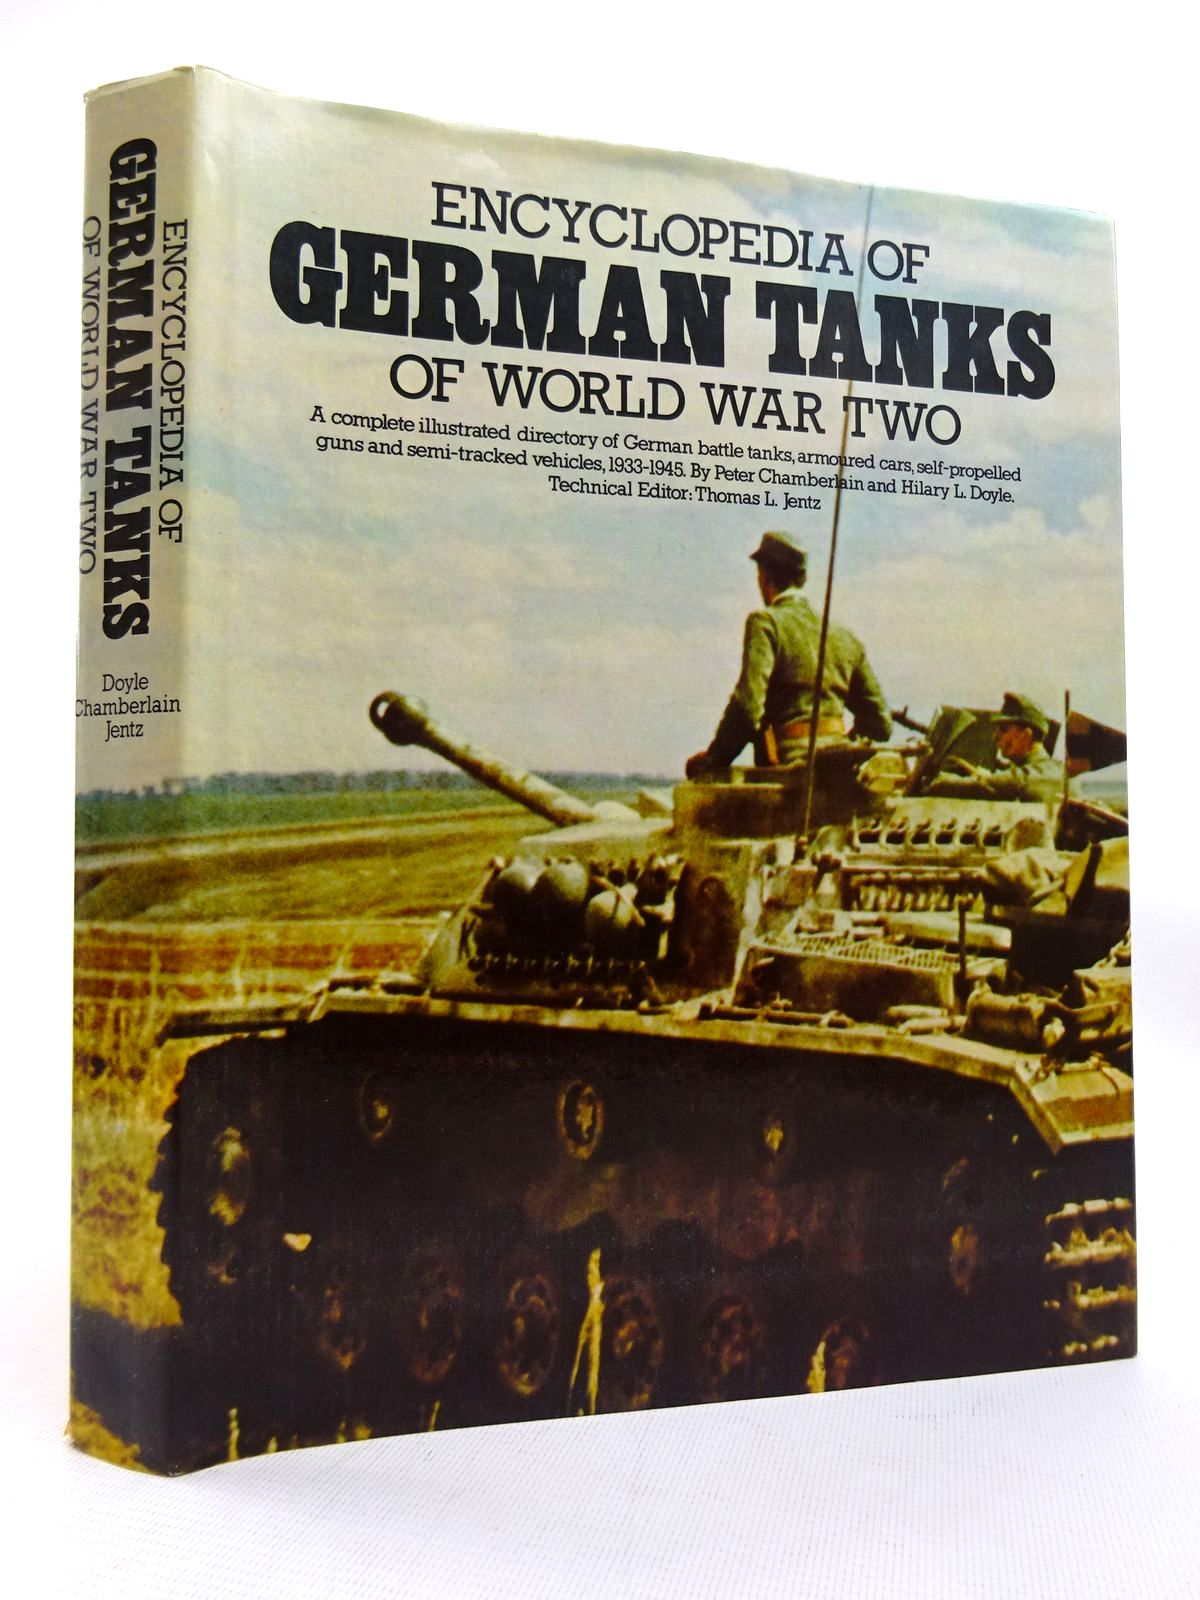 Photo of ENCYCLOPEDIA OF GERMAN TANKS OF WORLD WAR TWO written by Chamberlain, Peter<br />Doyle, Hilary<br />Jentz, Thomas published by Arms & Armour Press (STOCK CODE: 1816096)  for sale by Stella & Rose's Books